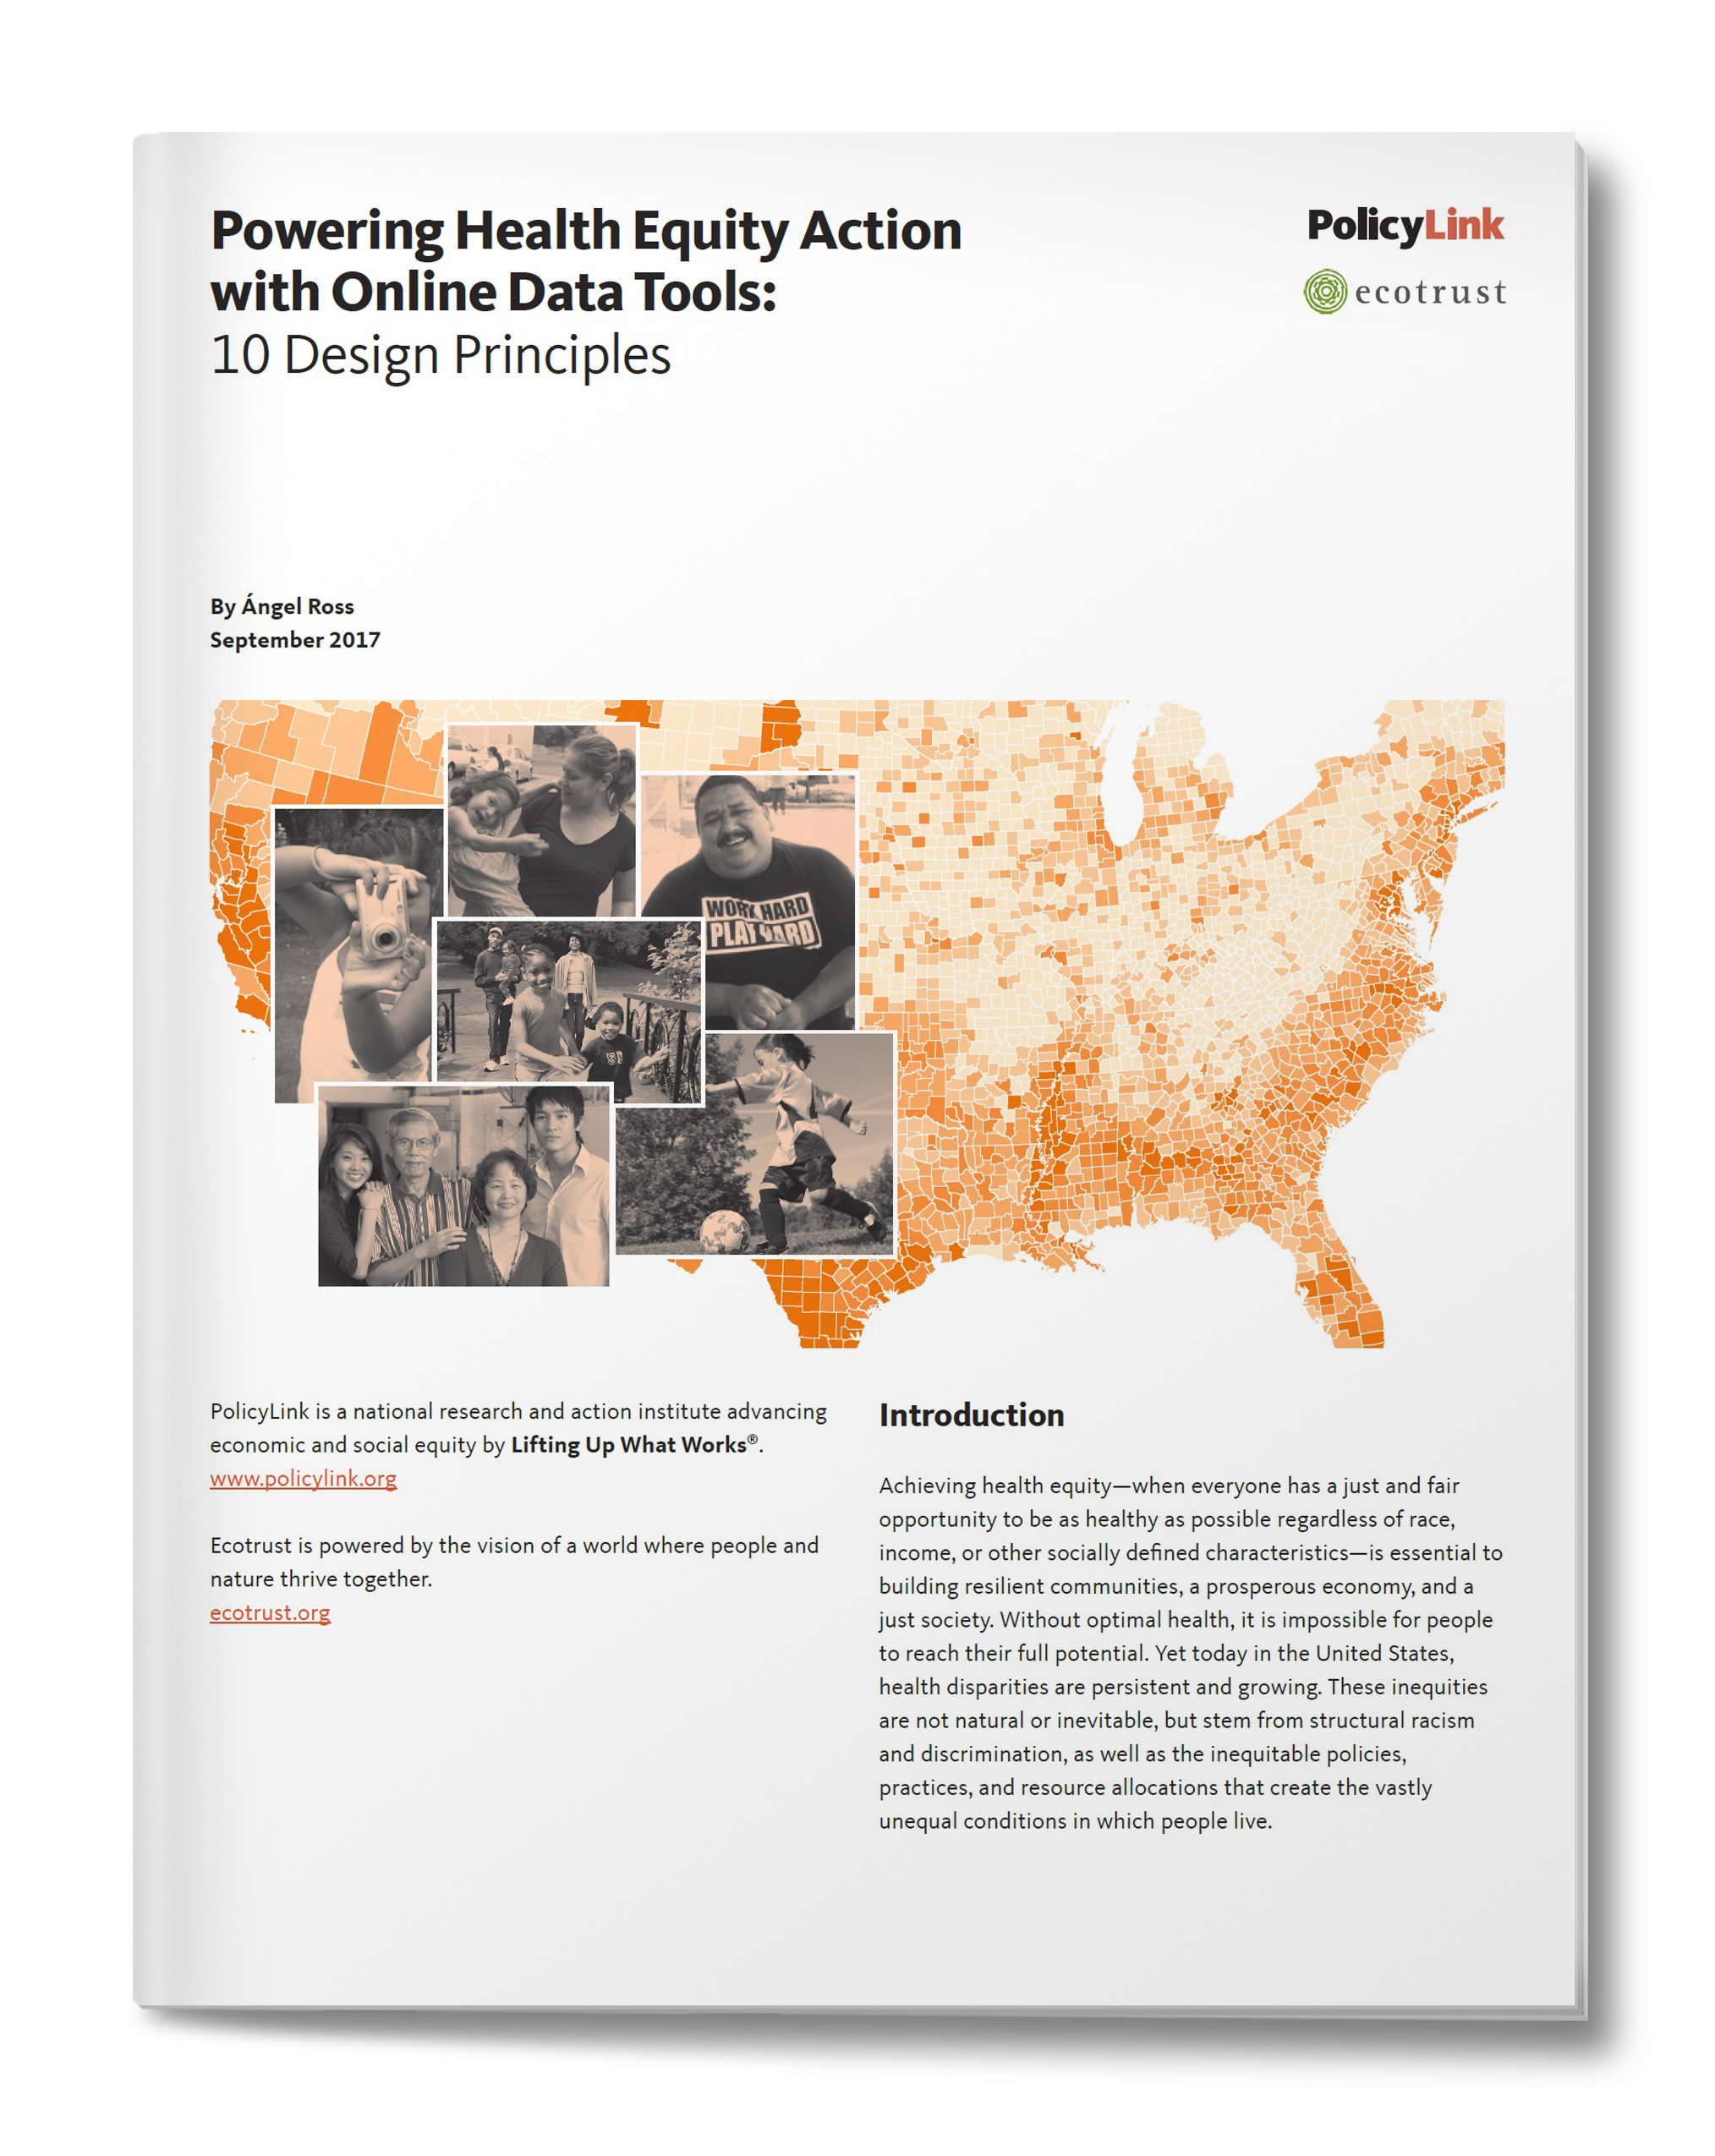 Powering Health Equity Action With Online Data Tools 10 Design Principles Ecotrust